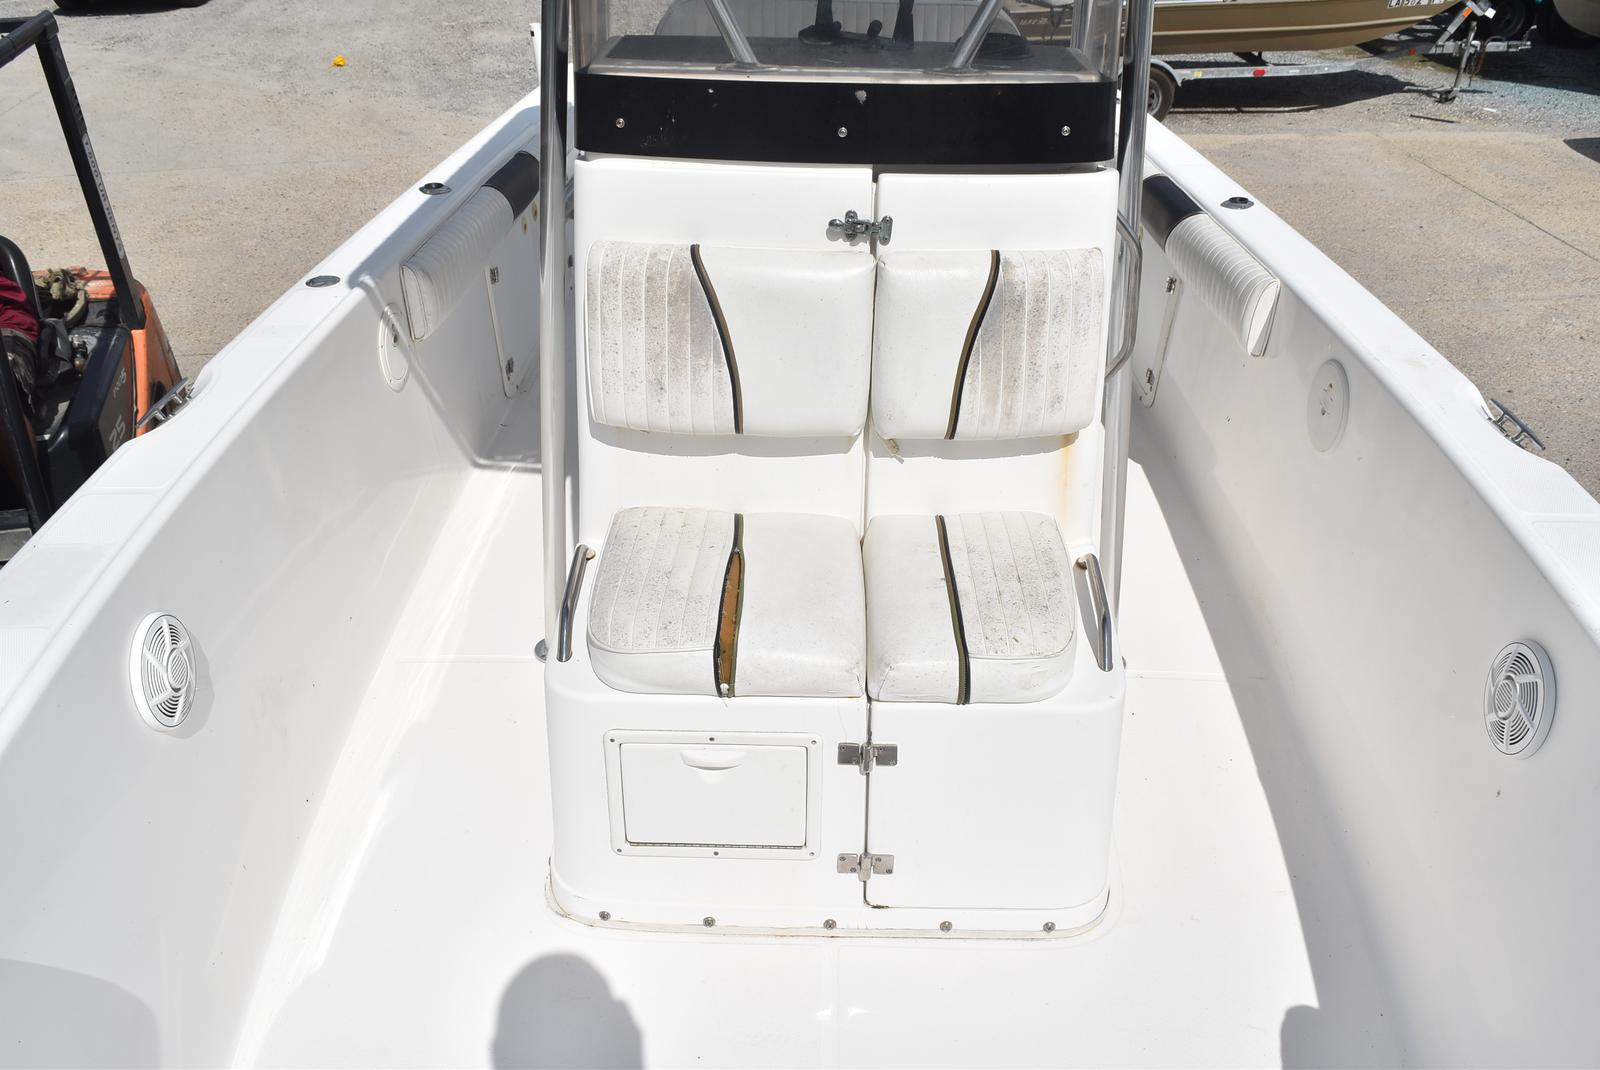 1999 Century boat for sale, model of the boat is 2600 CC & Image # 18 of 18